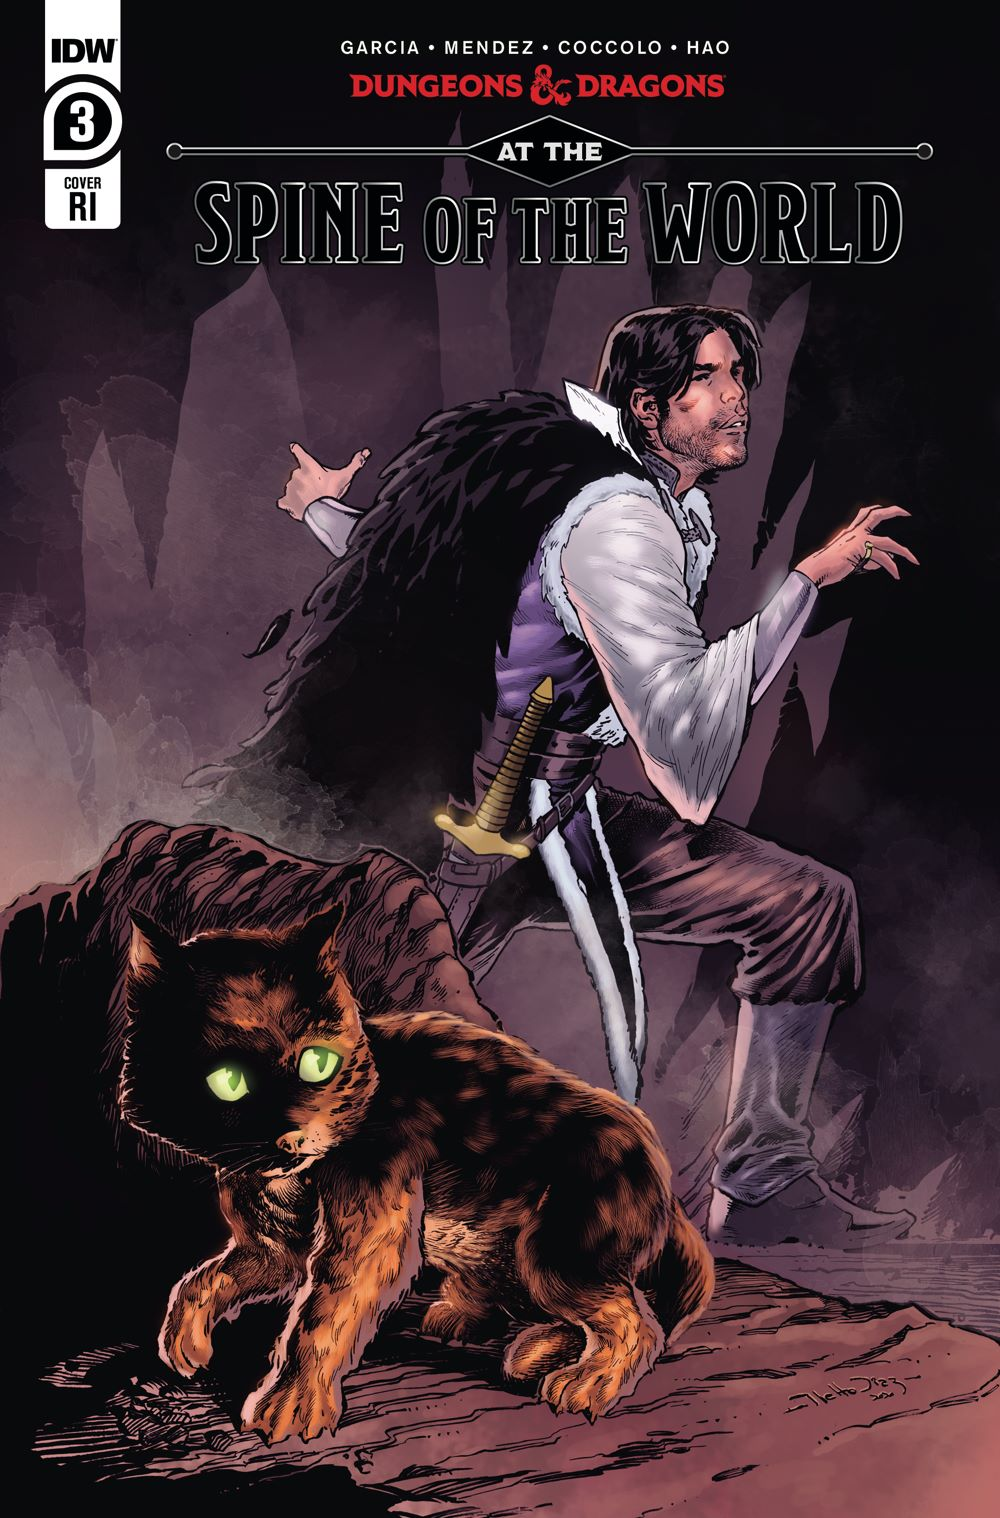 DD_ATSOTW03-coverRI ComicList: IDW Publishing New Releases for 01/06/2021